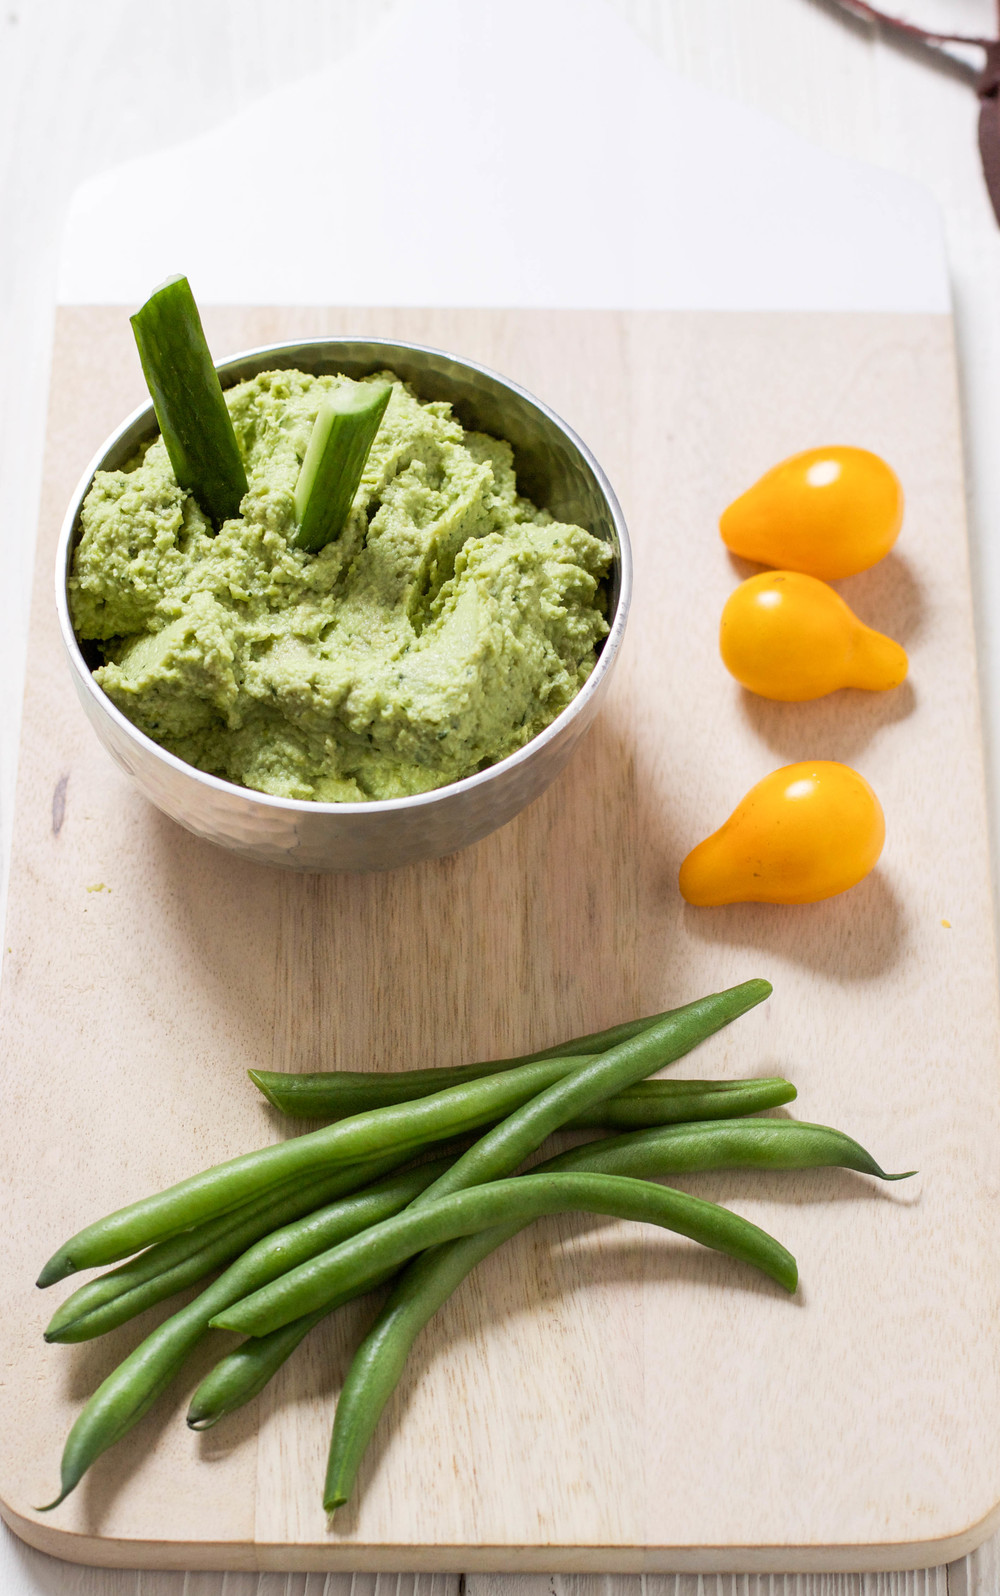 This zesty avocado and edamame dip requires just four ingredients, and is fast and easy to make! You'll love it because it's healthy and delicious, and your toddler will love it because they can dip and feed themselves. This is a terrific finger food to get more veggies into your picky eater, or to offer in a packed lunch or afternoon snack. #dip #snacks